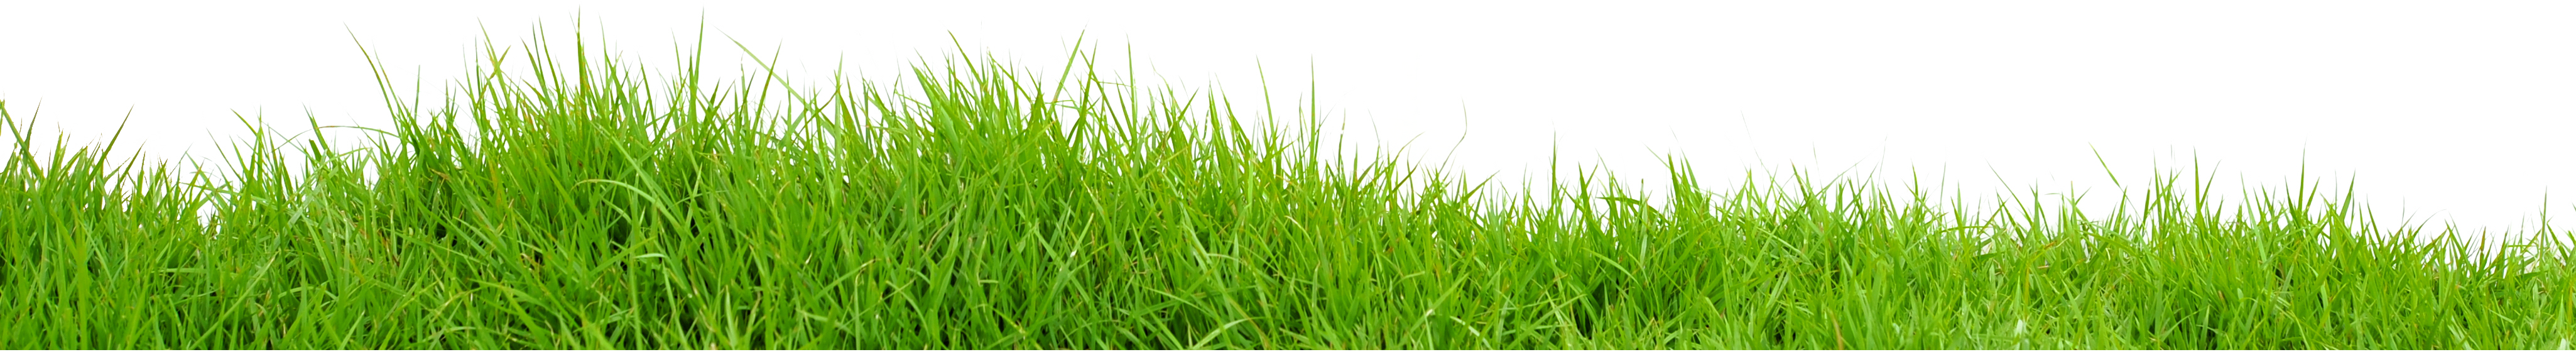 Vector grass png. Field images transparent free